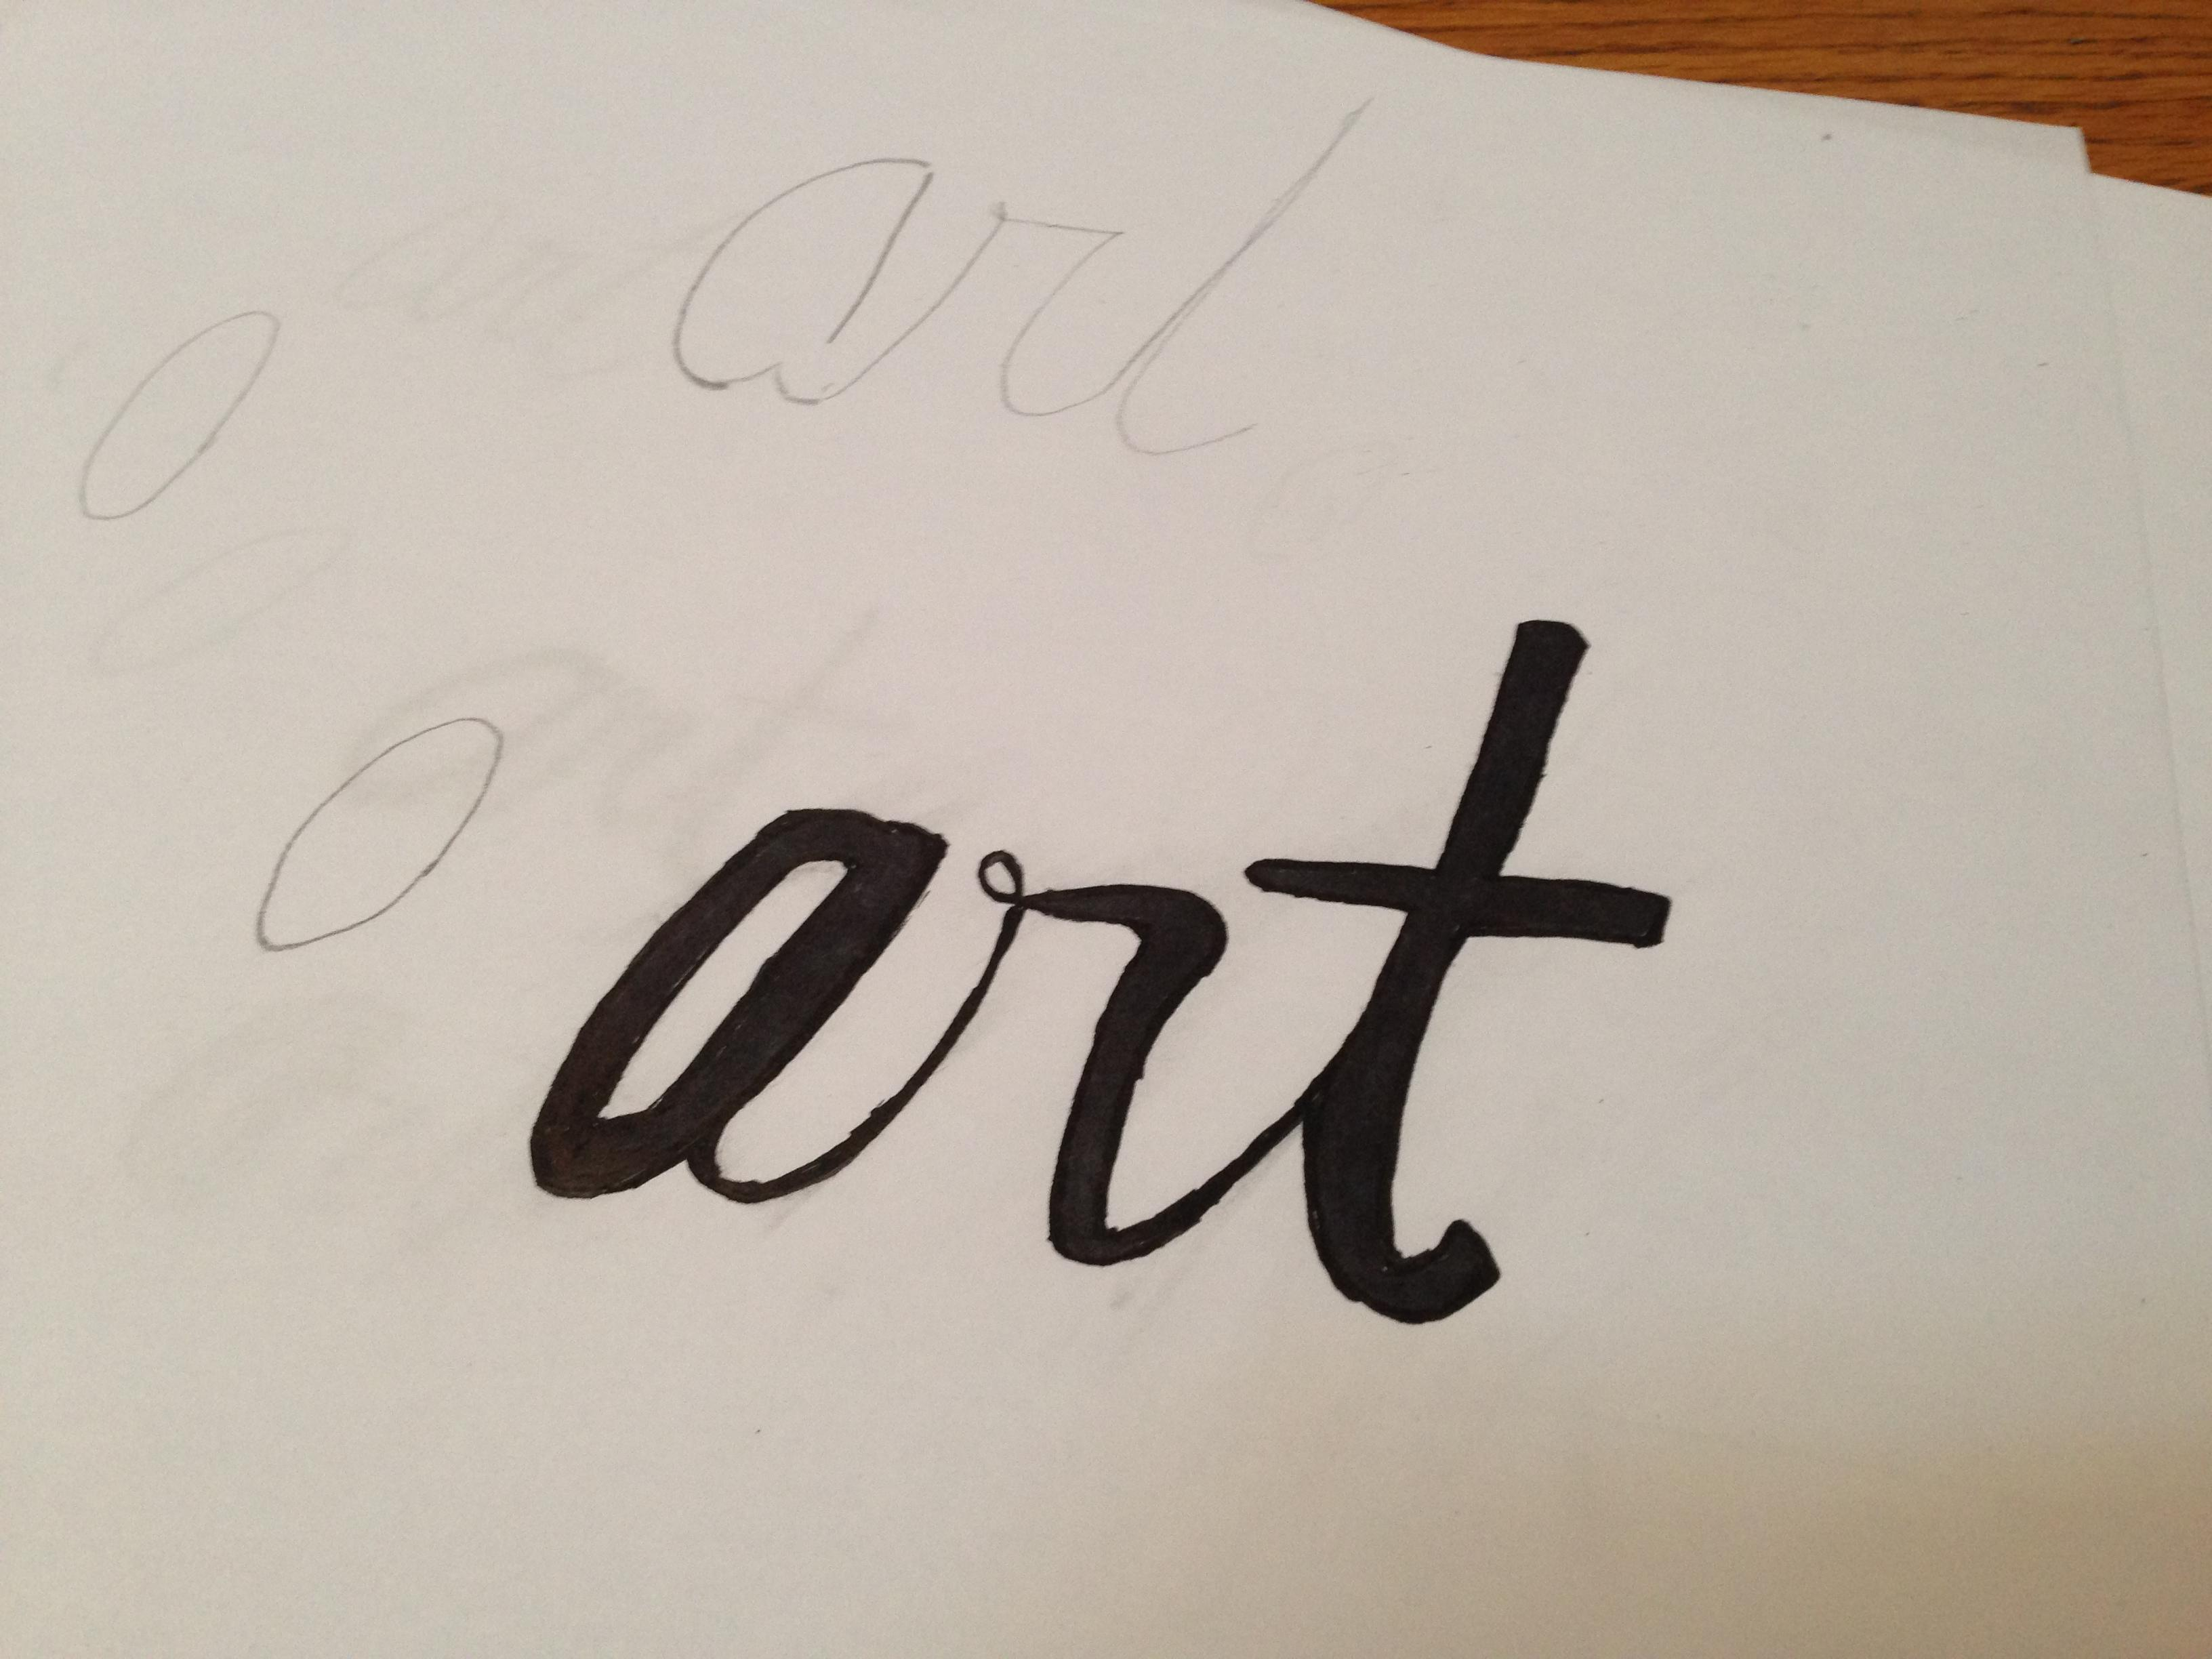 Since So Much Of This Phrase Is Hinged On The Word Art I Tried Writing It In A Few Different Styles